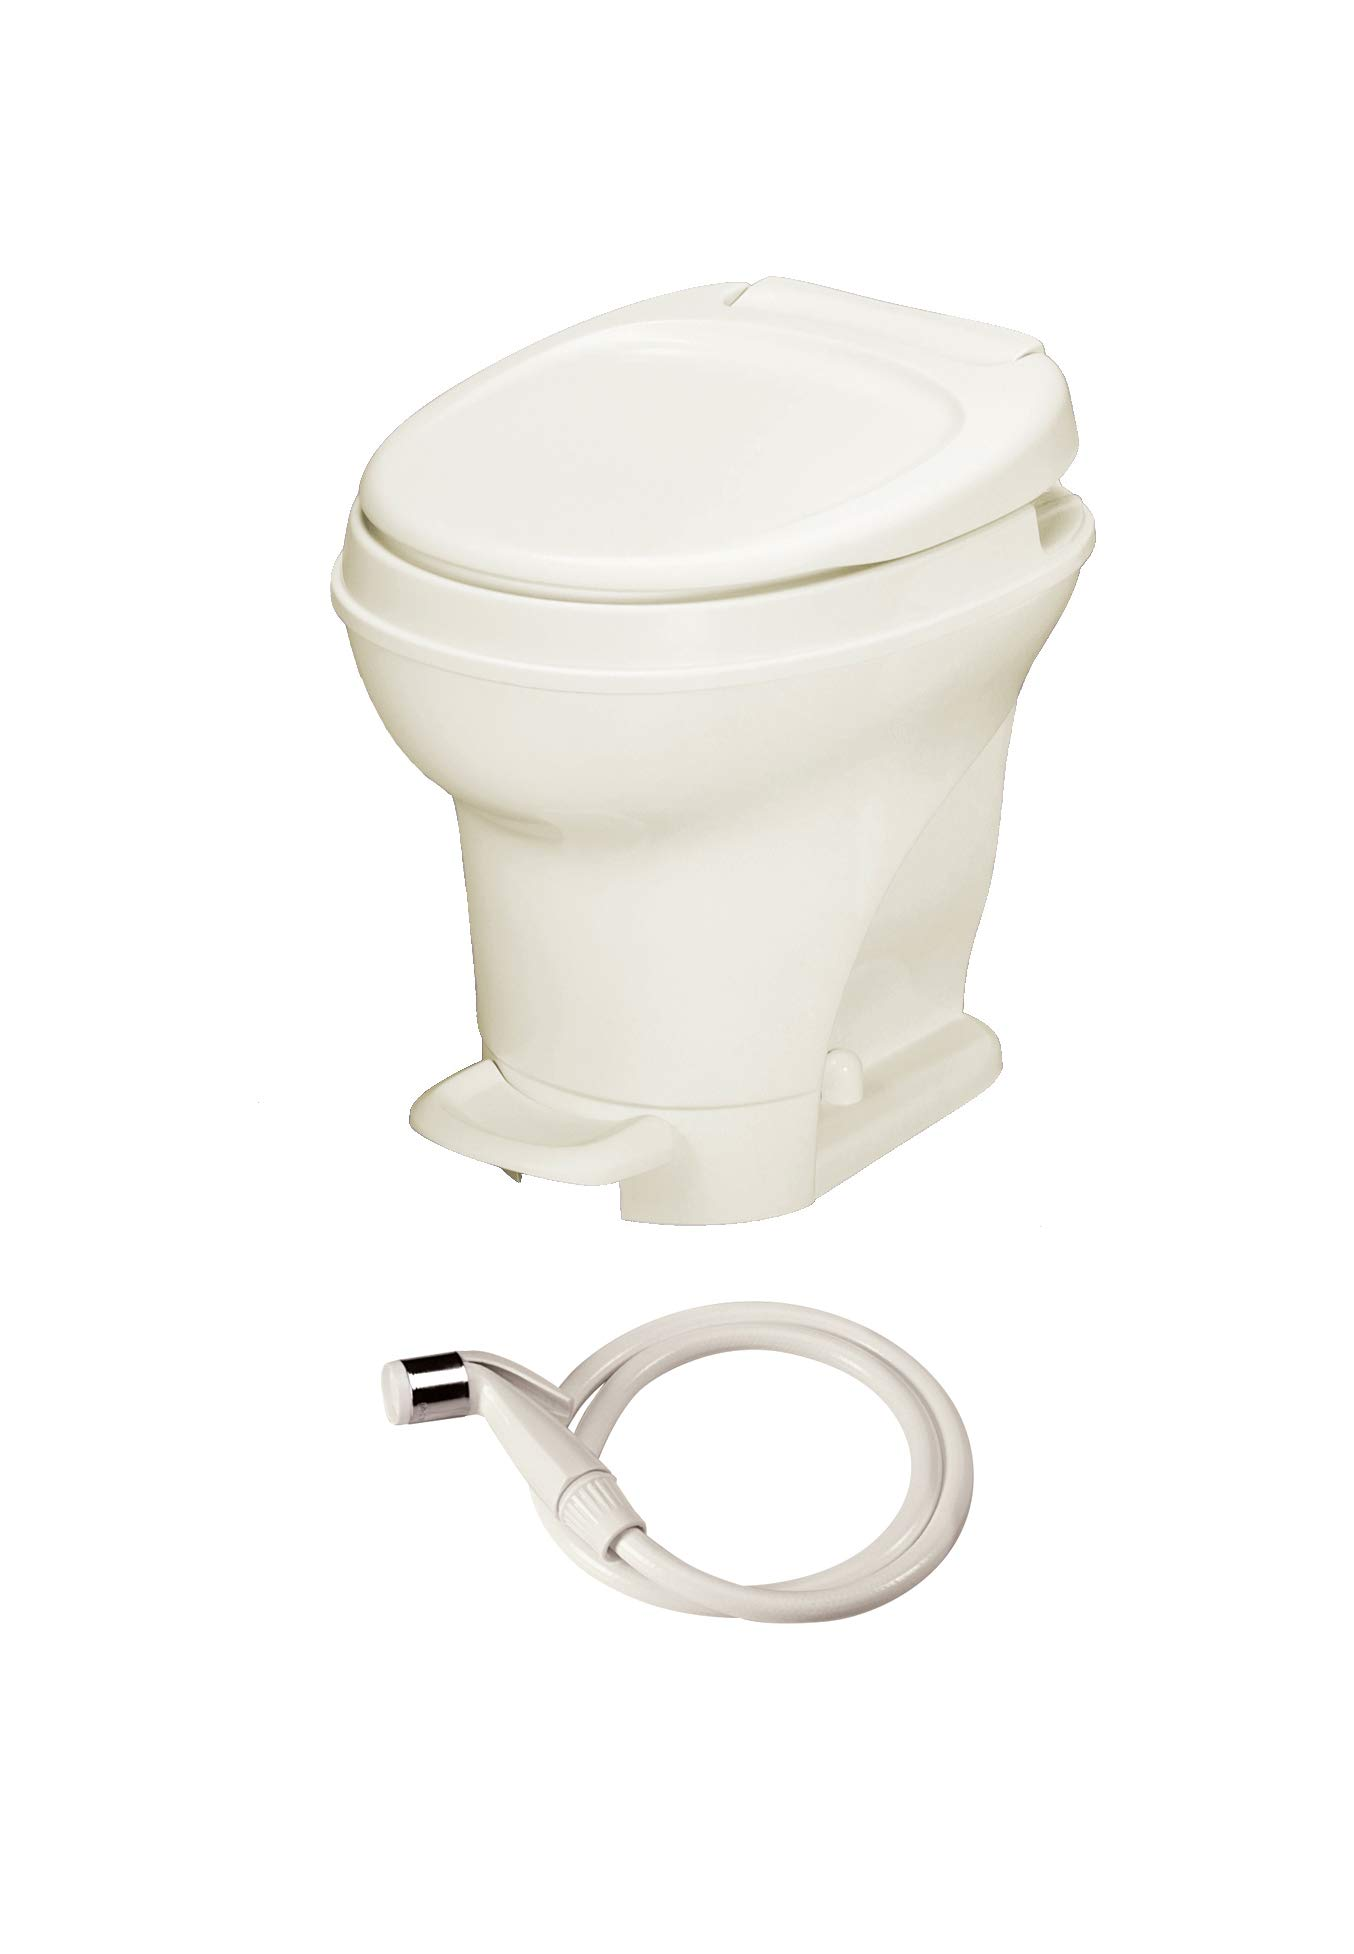 Thetford Parchment Aqua-Magic V RV Toilet-High Profile Color-Hand Sprayer-Pedal Flush 31680 by Thetford